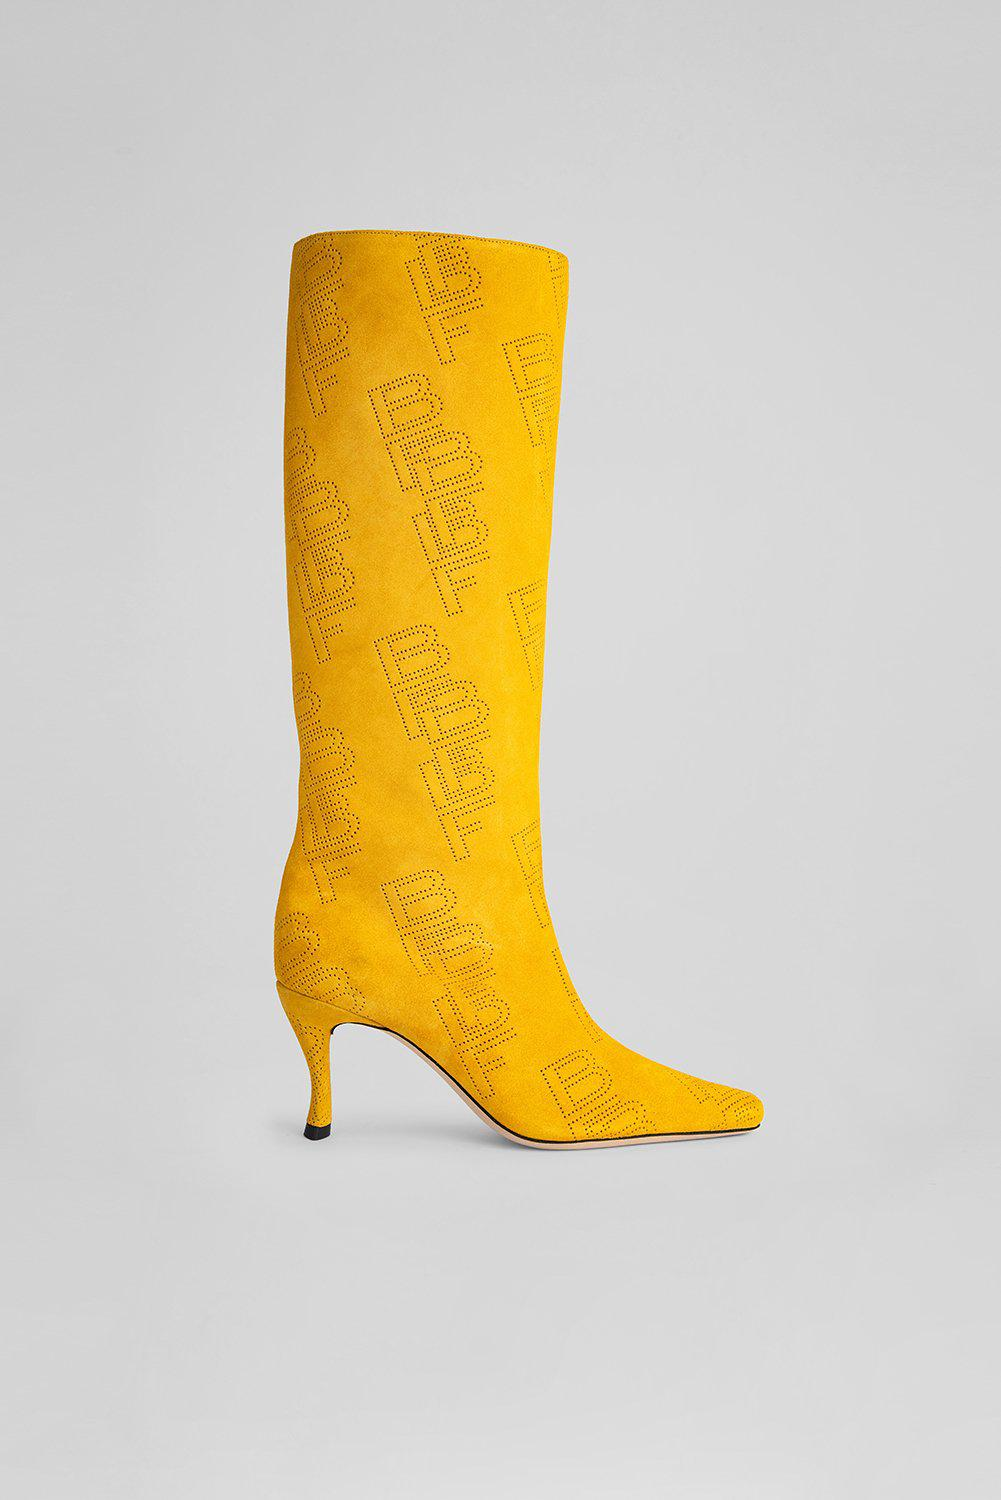 Stevie 42 Taxi Perforated Suede Leather